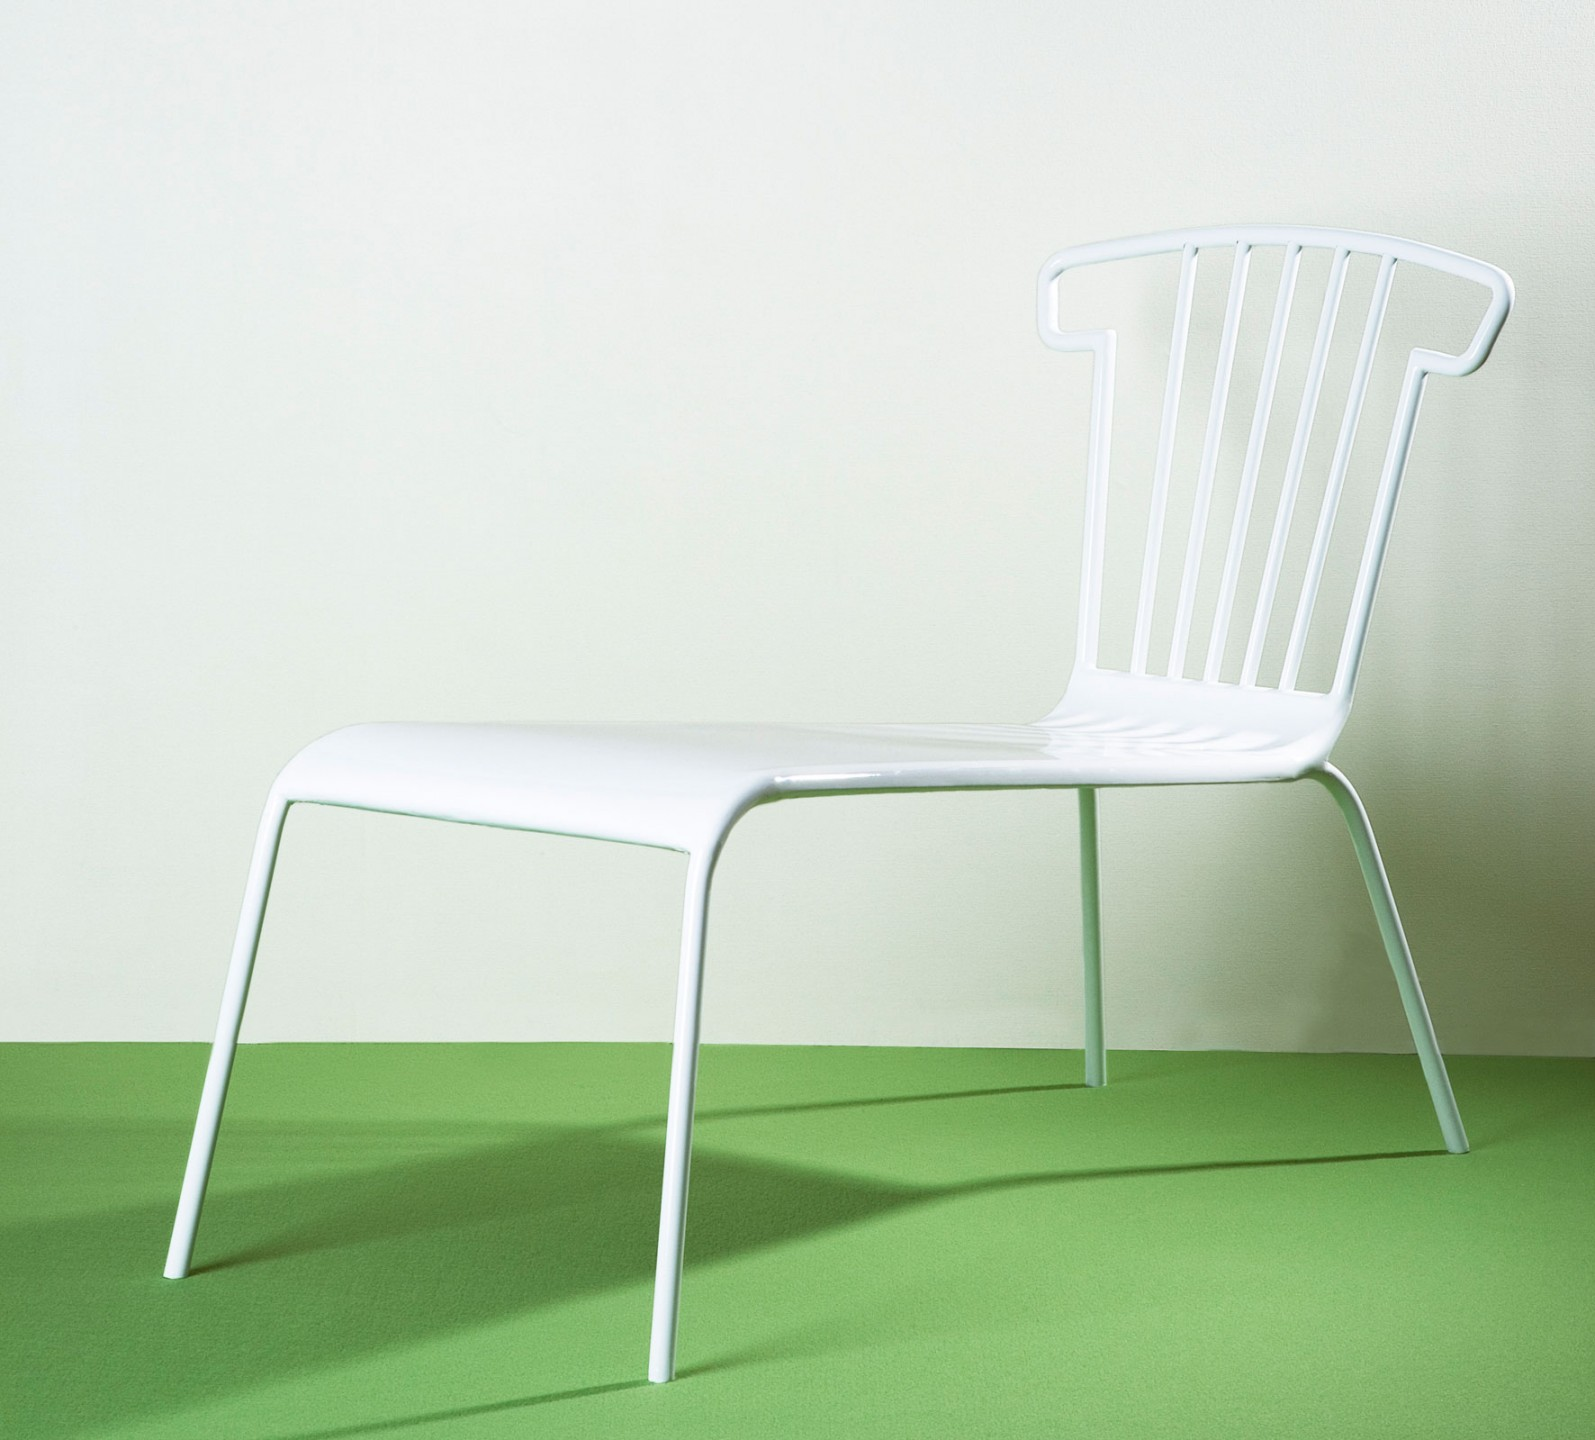 Chair-bench-1